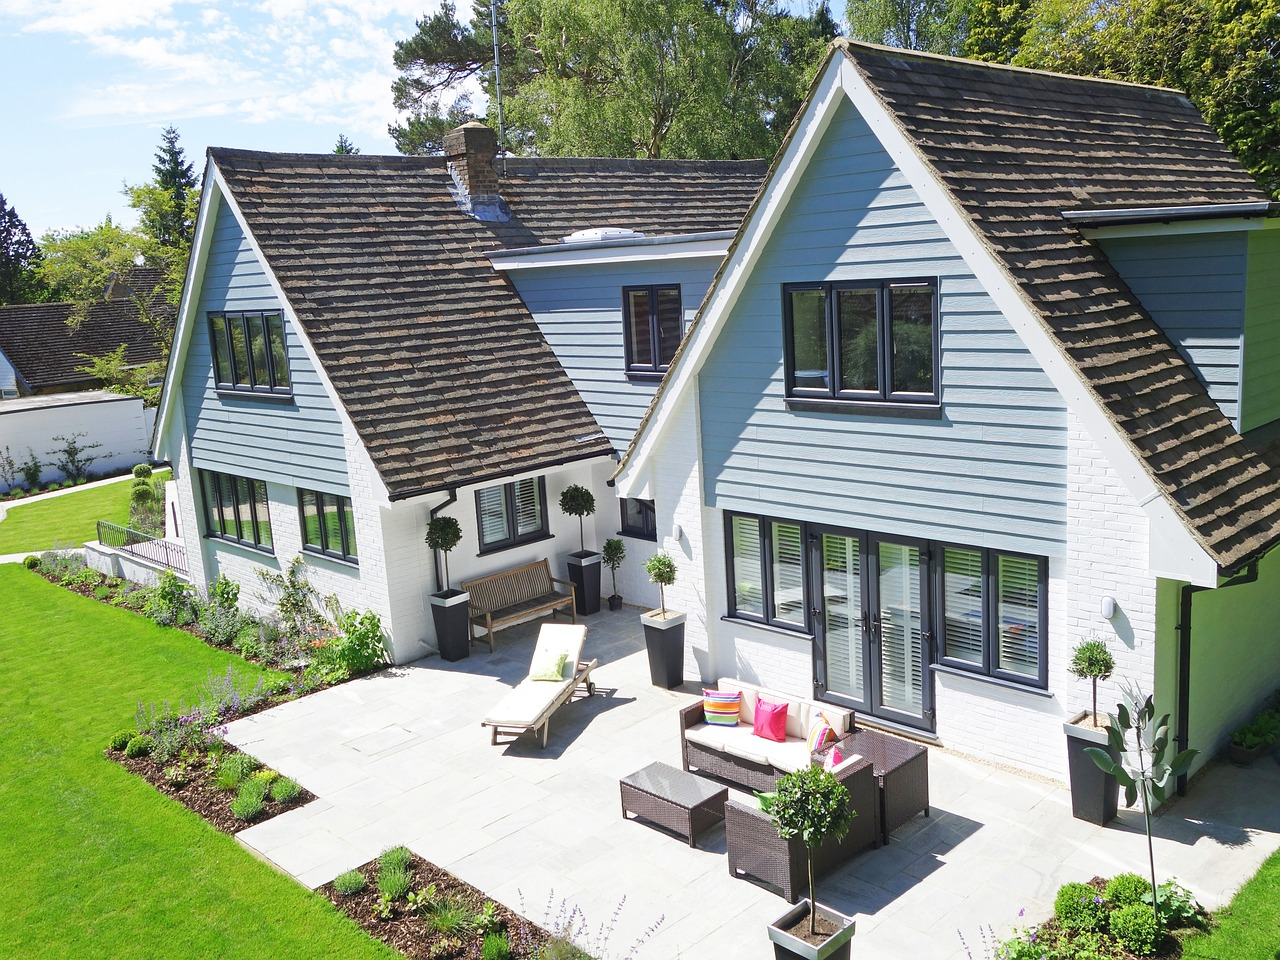 California Homeowner Insurance and Preparing for a Claim